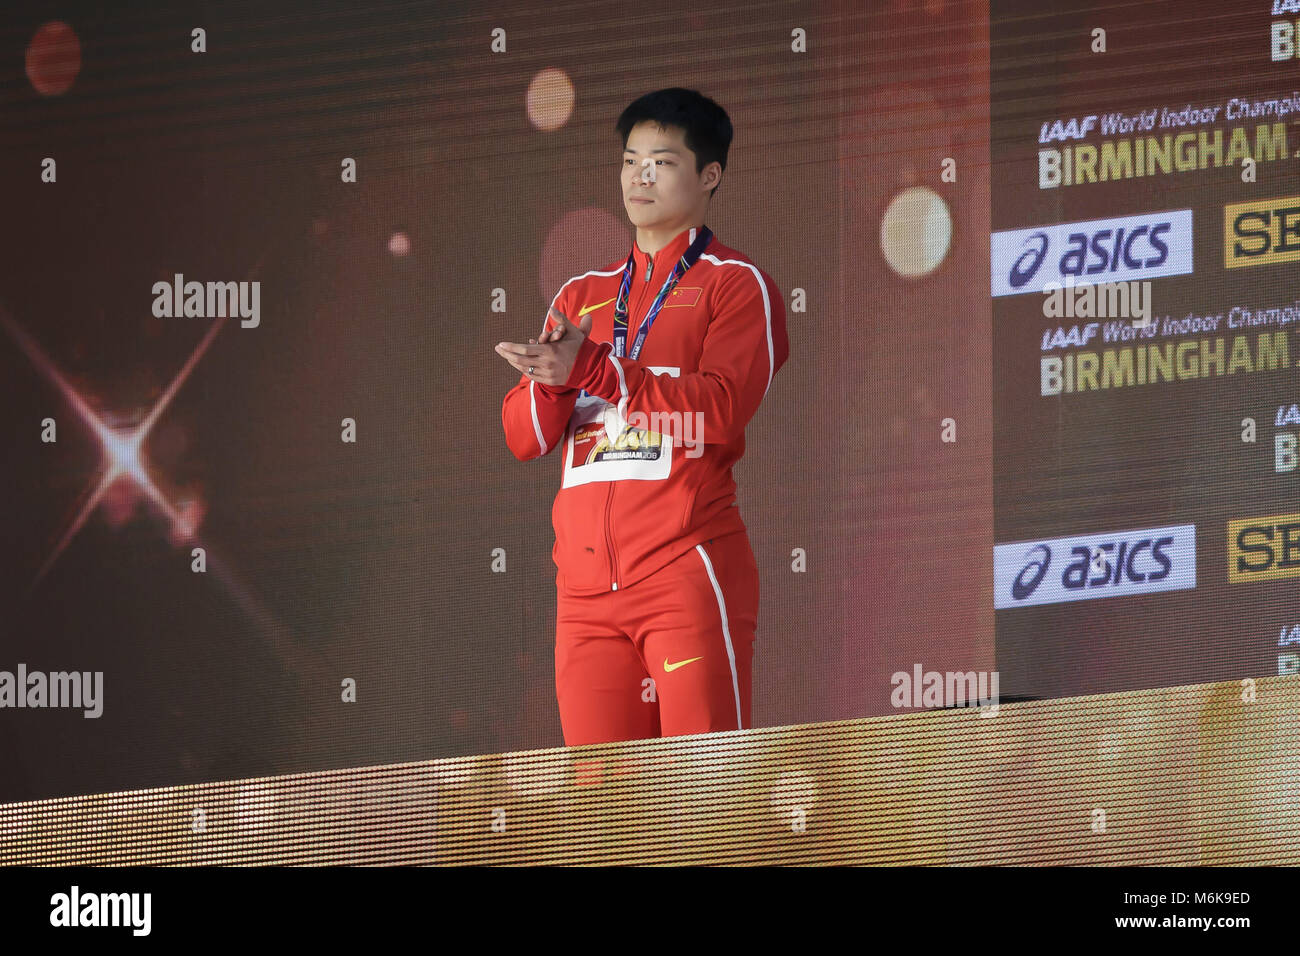 (180305) -- BIRMINGHAM, March 5, 2018 (Xinhua) -- Silver medalist Su Bingtian of China reacts during the medal ceremony - Stock Image